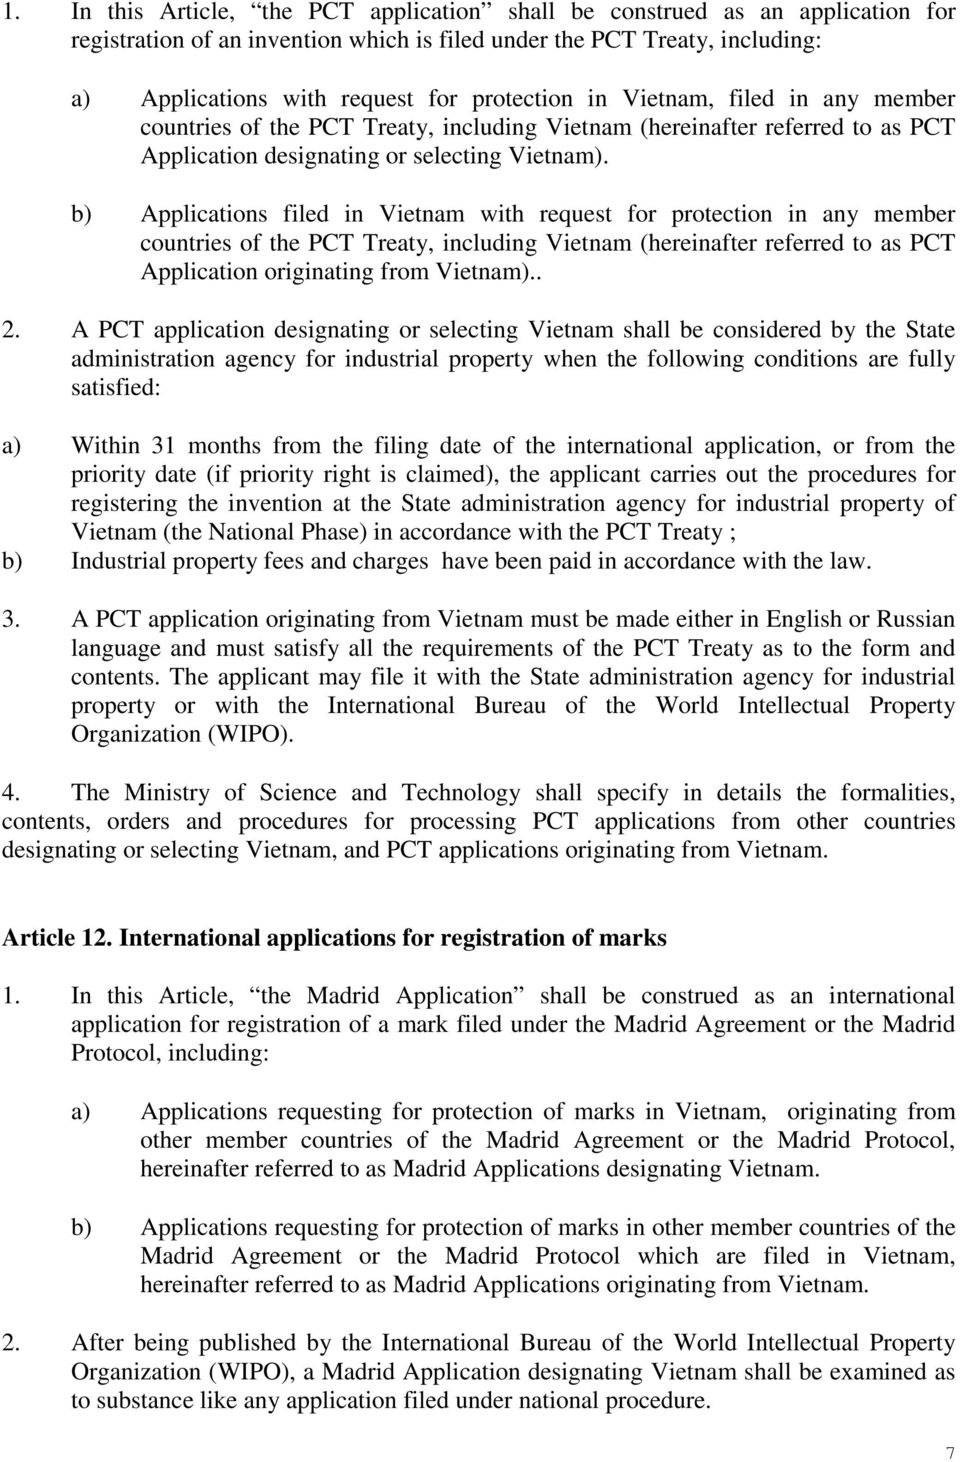 b) Applications filed in Vietnam with request for protection in any member countries of the PCT Treaty, including Vietnam (hereinafter referred to as PCT Application originating from Vietnam).. 2.